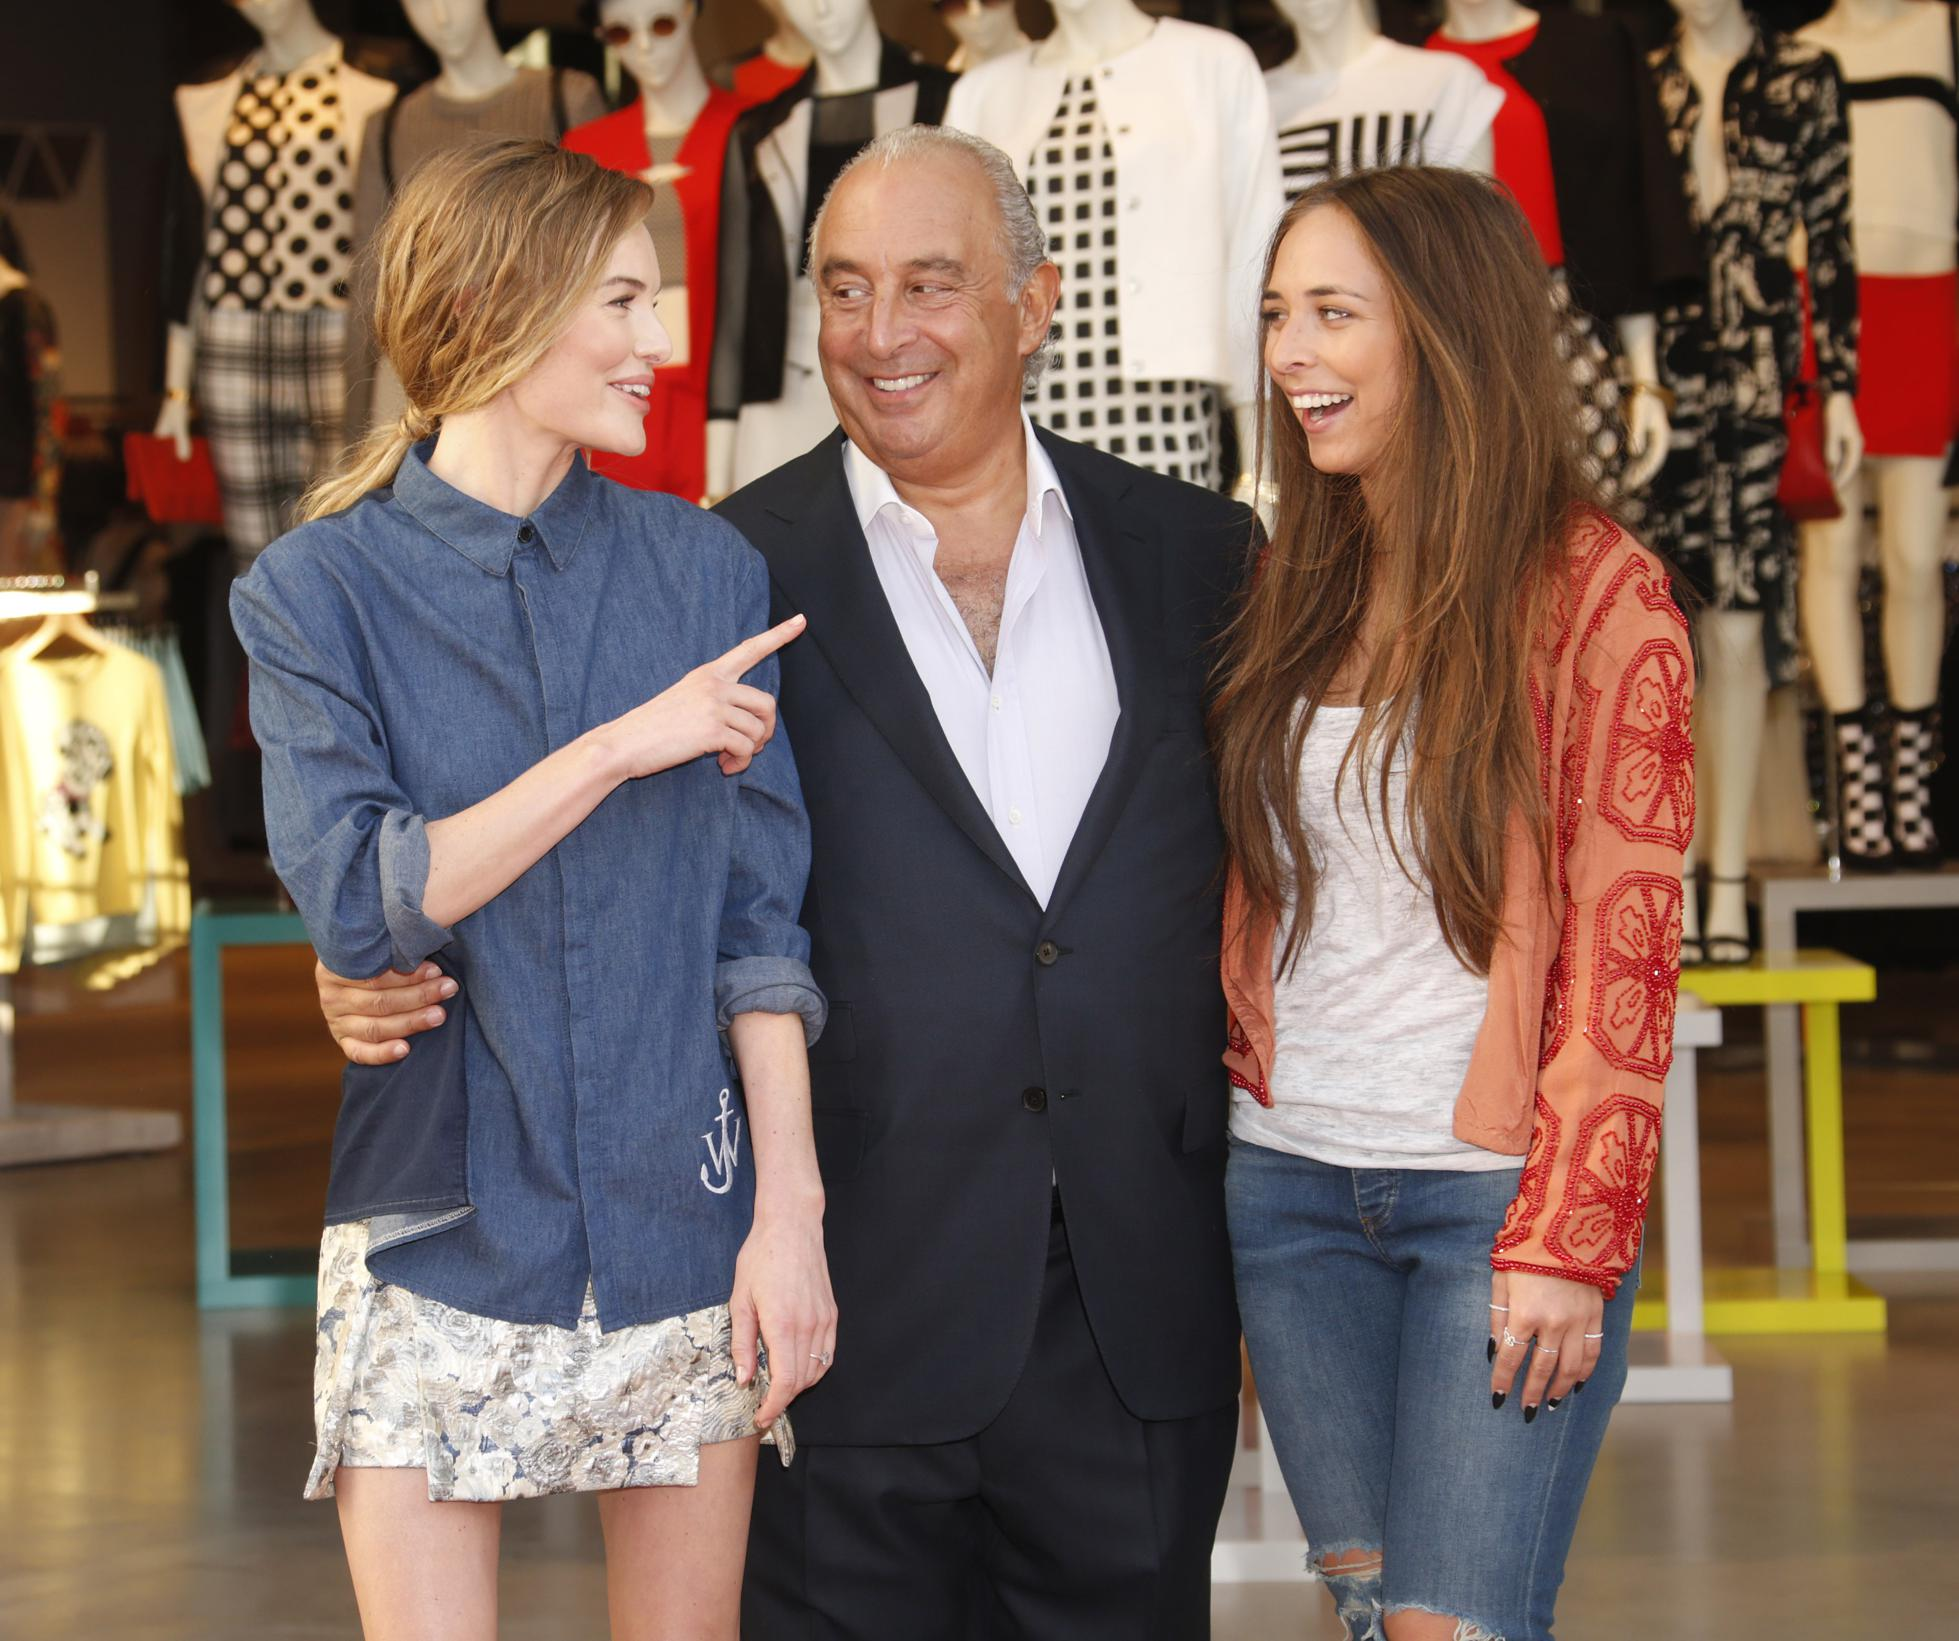 Sir Philip Green hosts a British Street Party to celebrate the O